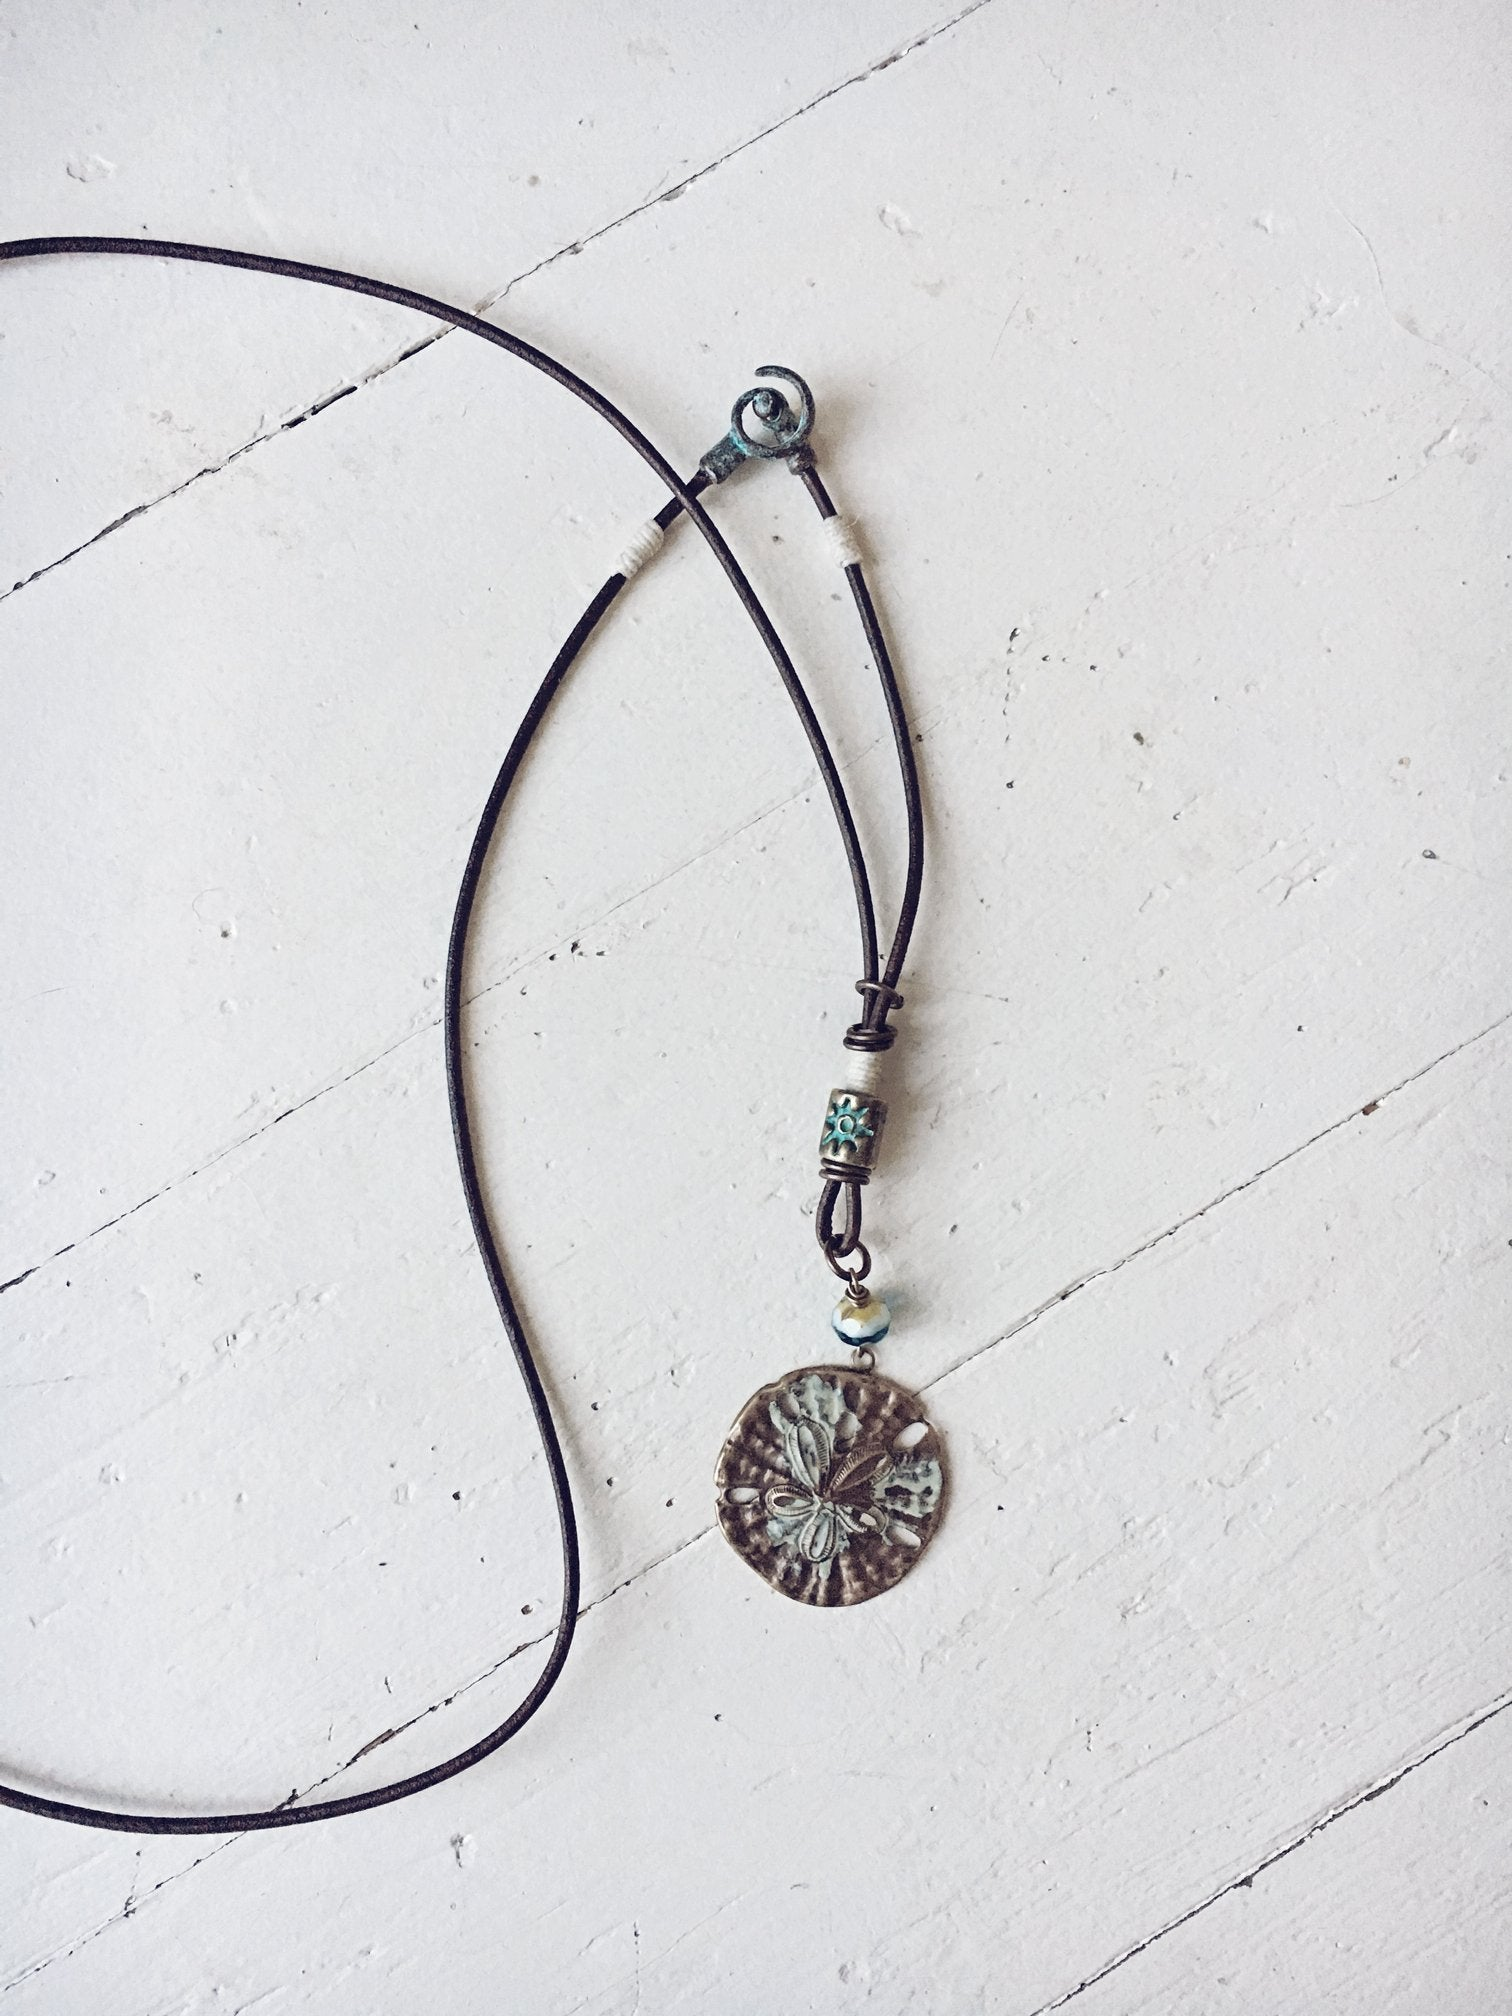 sand dollar boho beach style leather necklace - Peacock & Lime